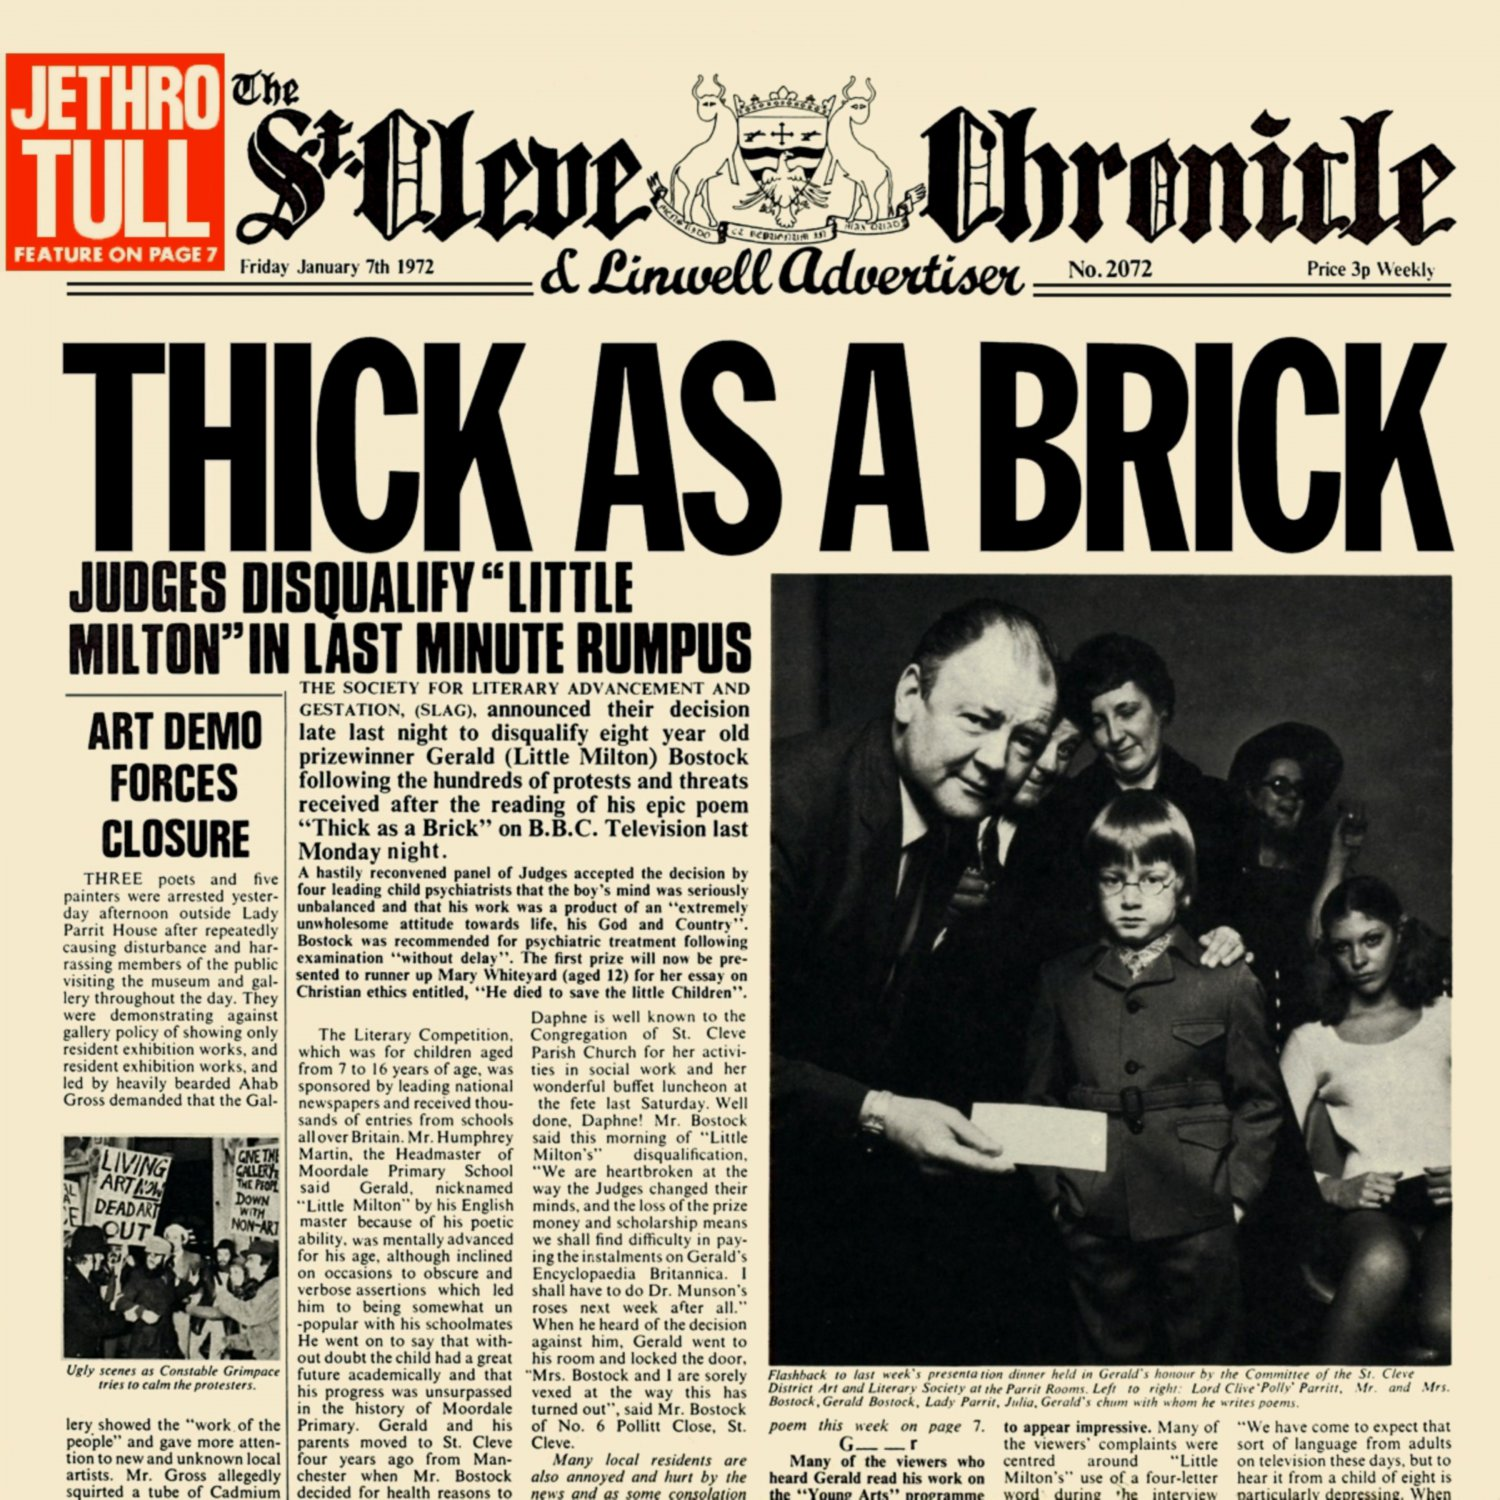 JETHRO TULL Thick as a Brick BANNER Huge 4X4 Ft Fabric Poster Tapestry Flag Print album cover art